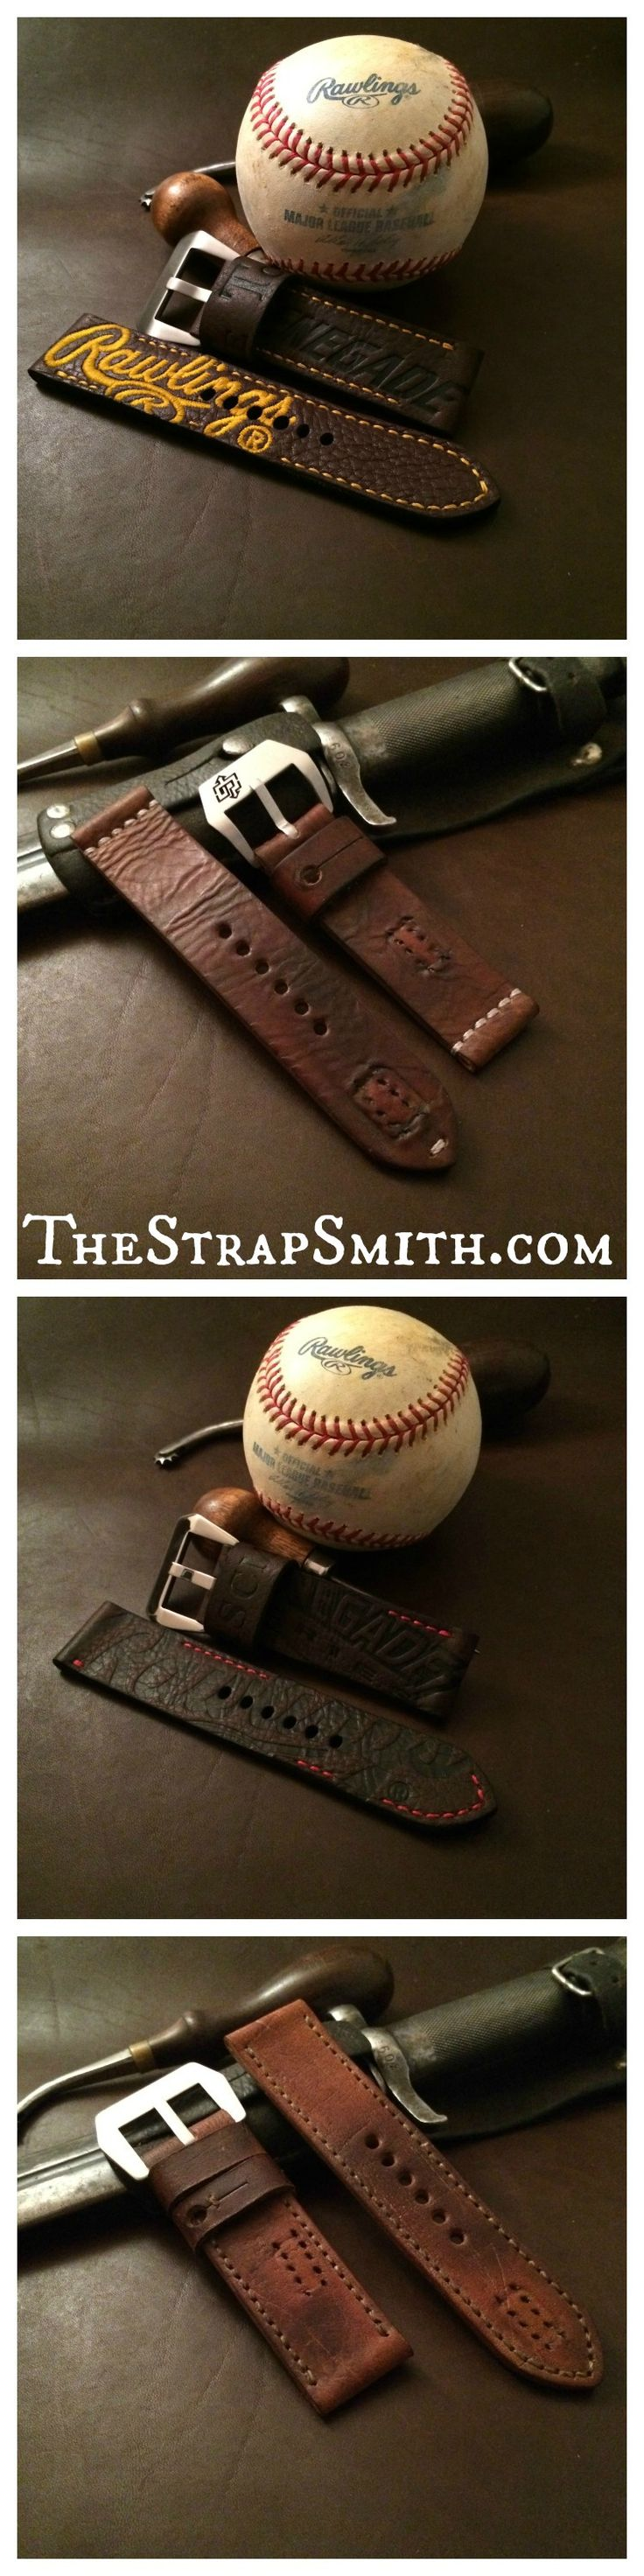 baseball and vintage watch straps. built and ready to ship!